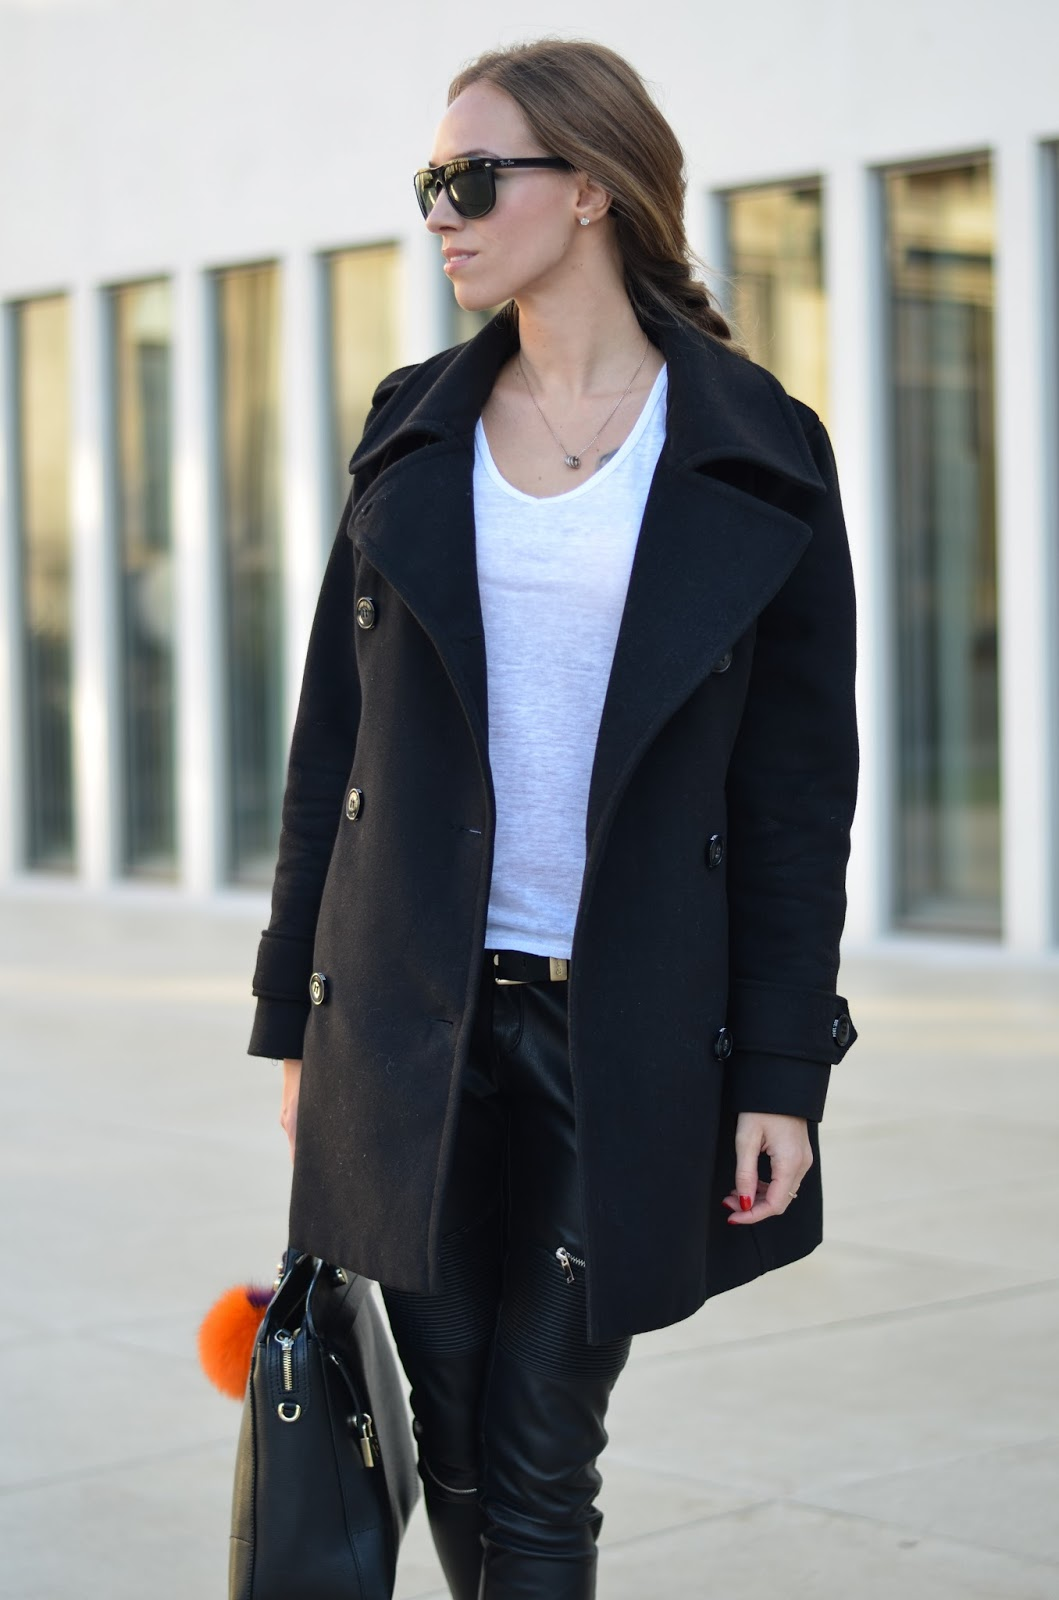 kristjaana mere minimalist casual winter fashion